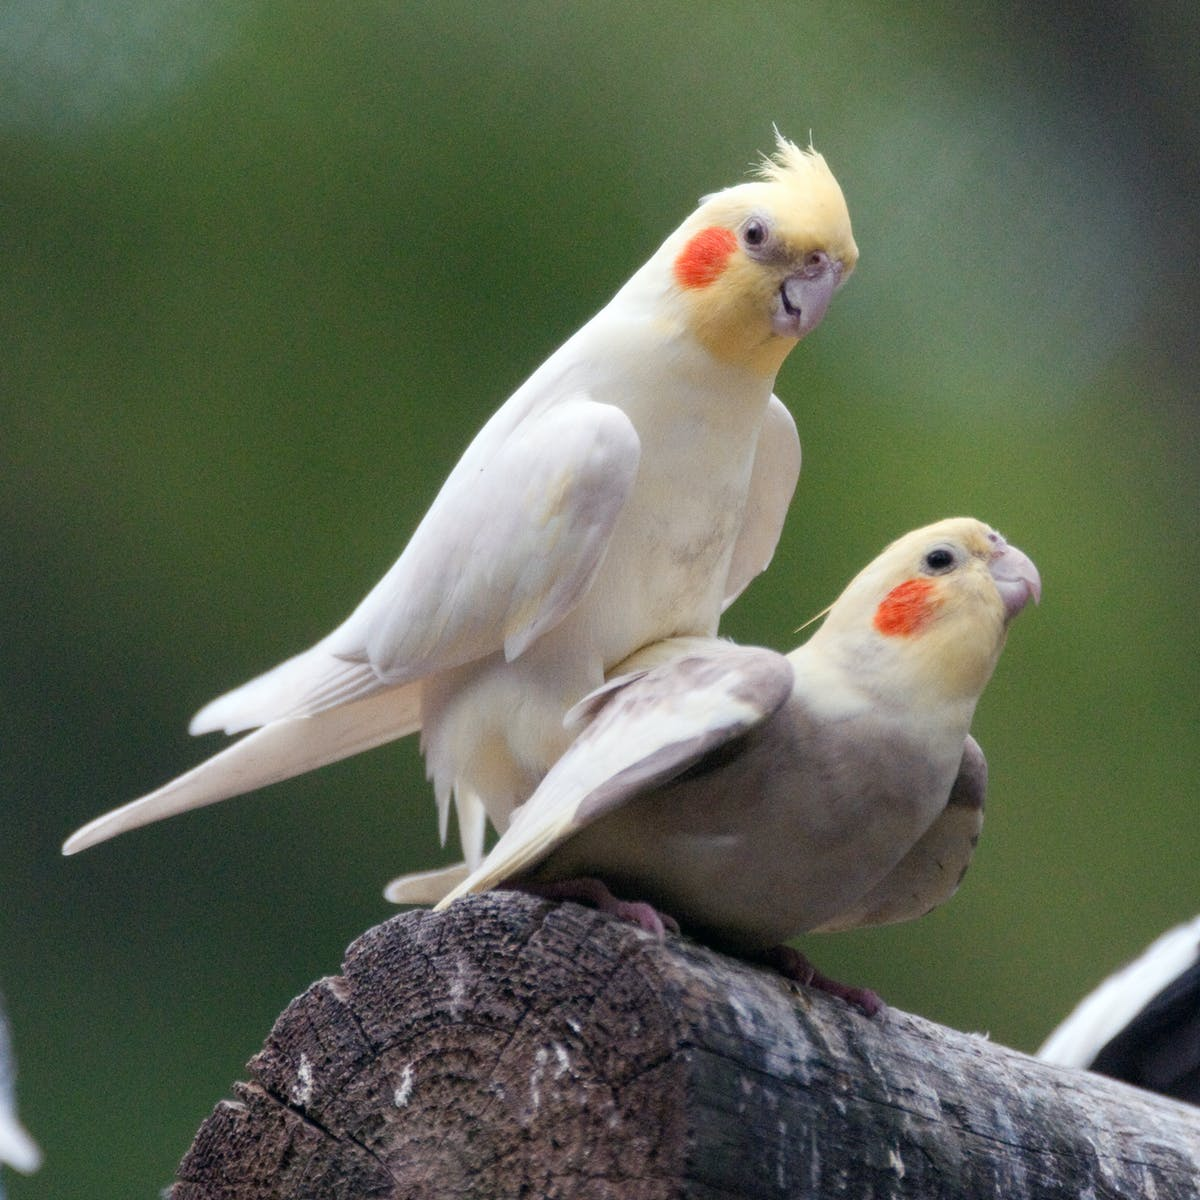 When male birds keep it interesting in the bedroom, both partners benefit